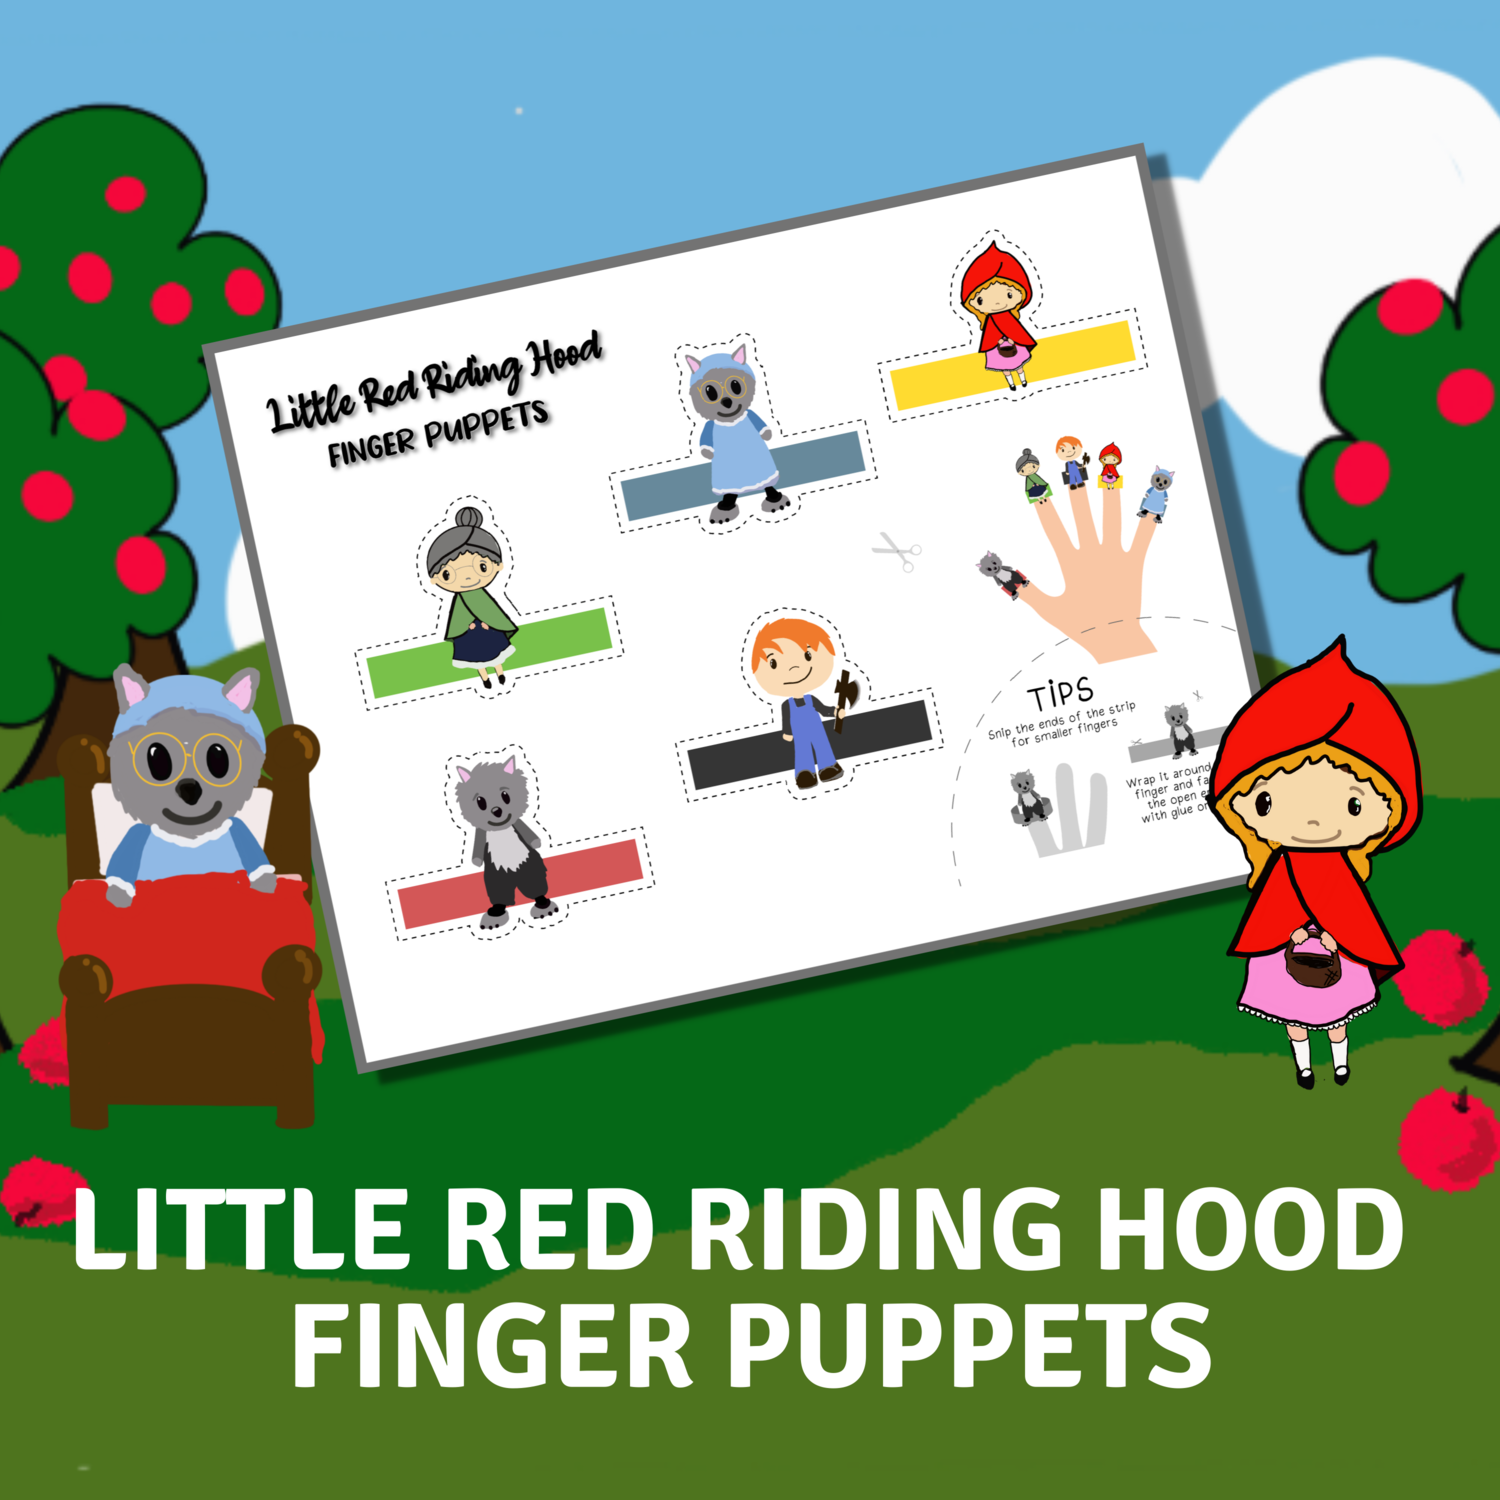 Little Red Riding Hood Finger Puppets for Corinne